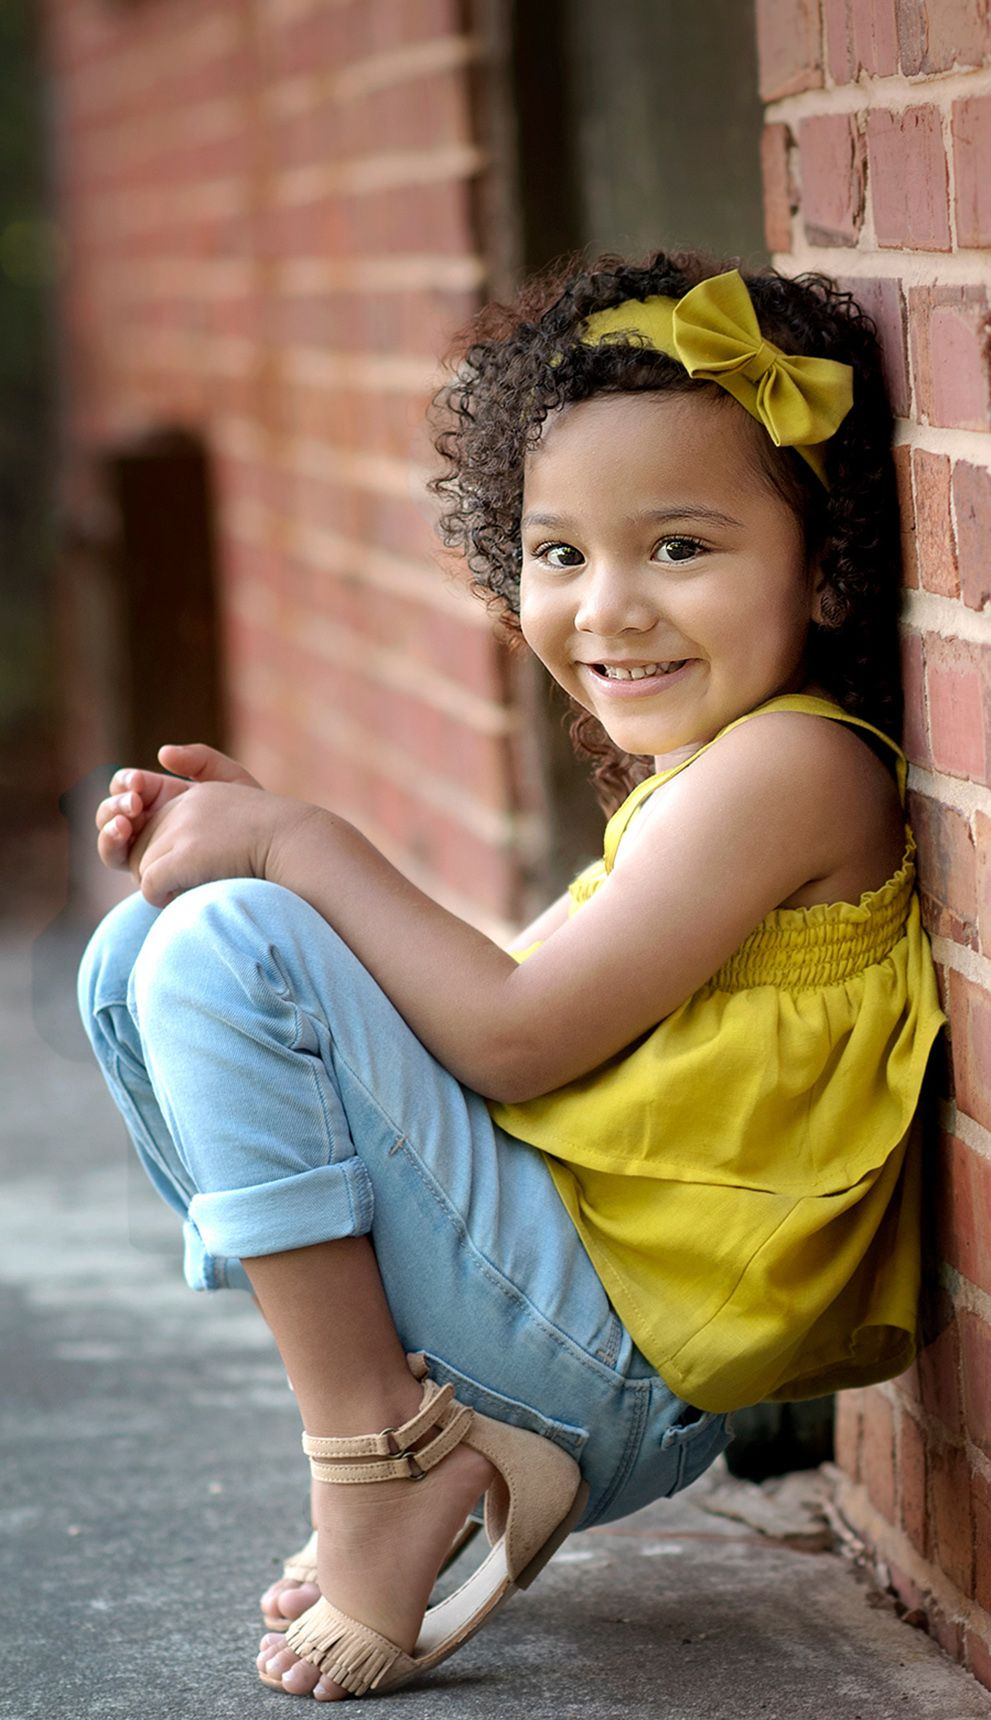 child leaning on brick wall in yellow shirt